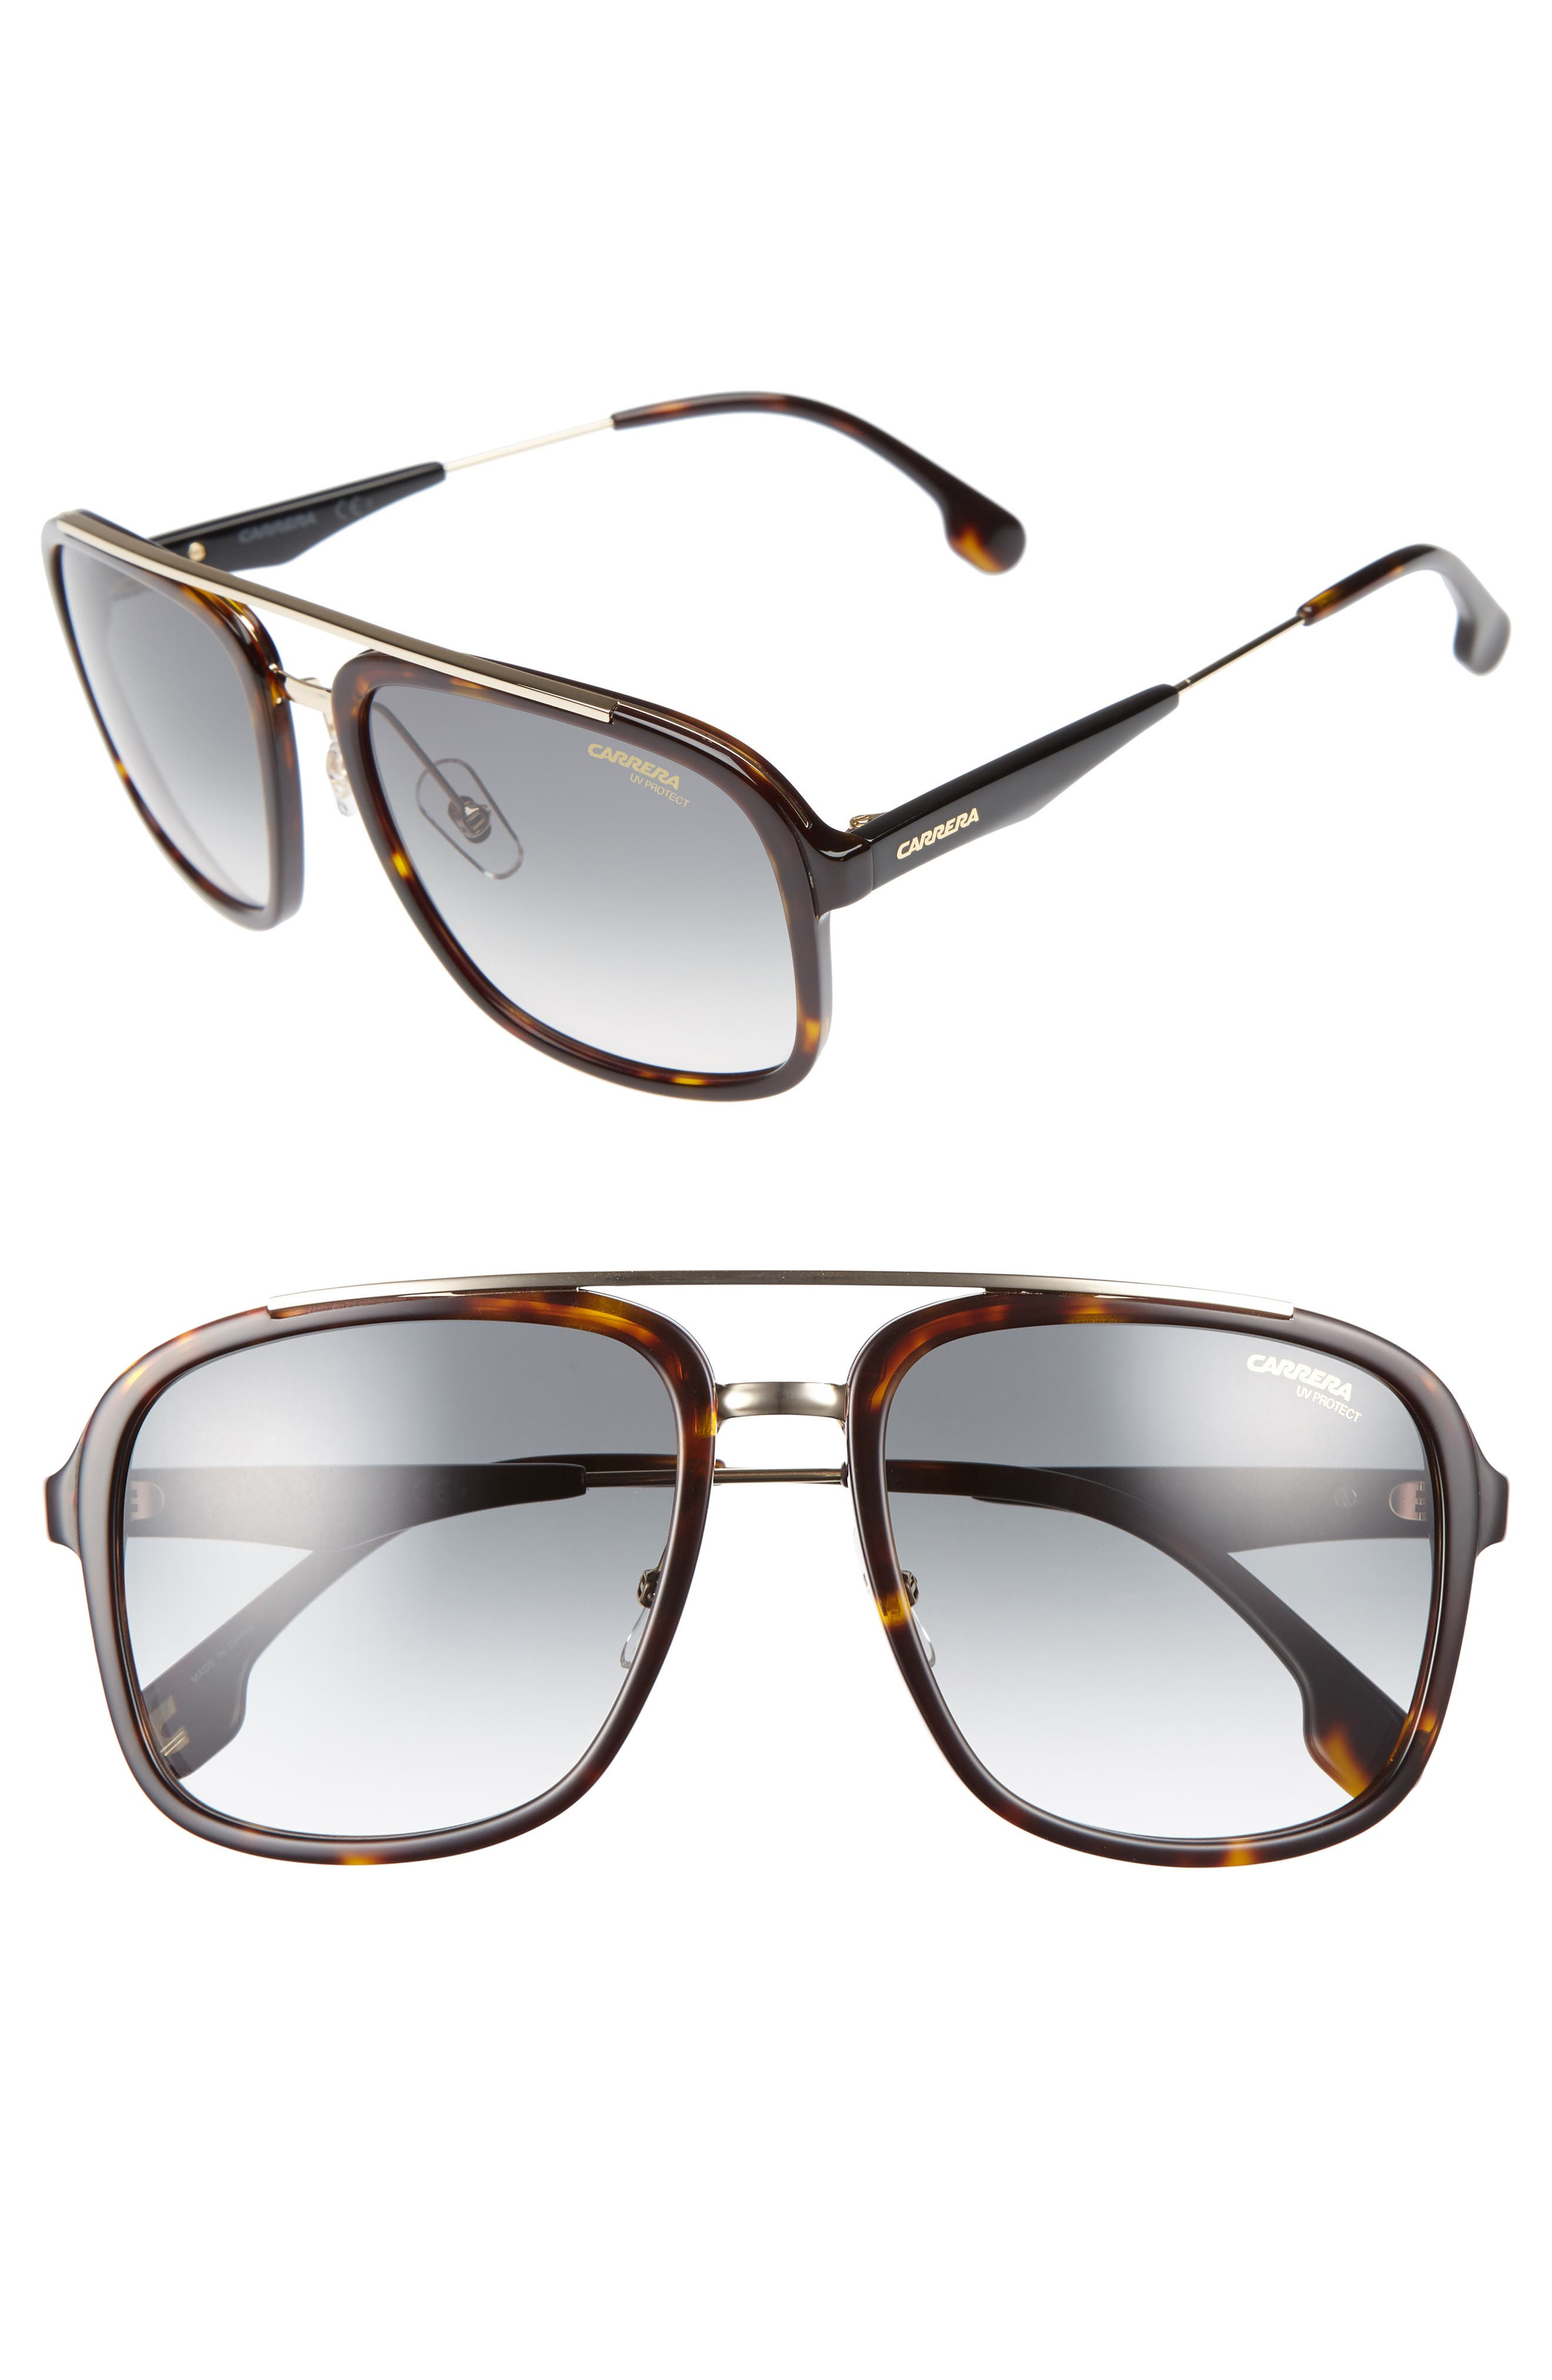 Carrera Eyewear 57Mm Sunglasses - Havana Gold